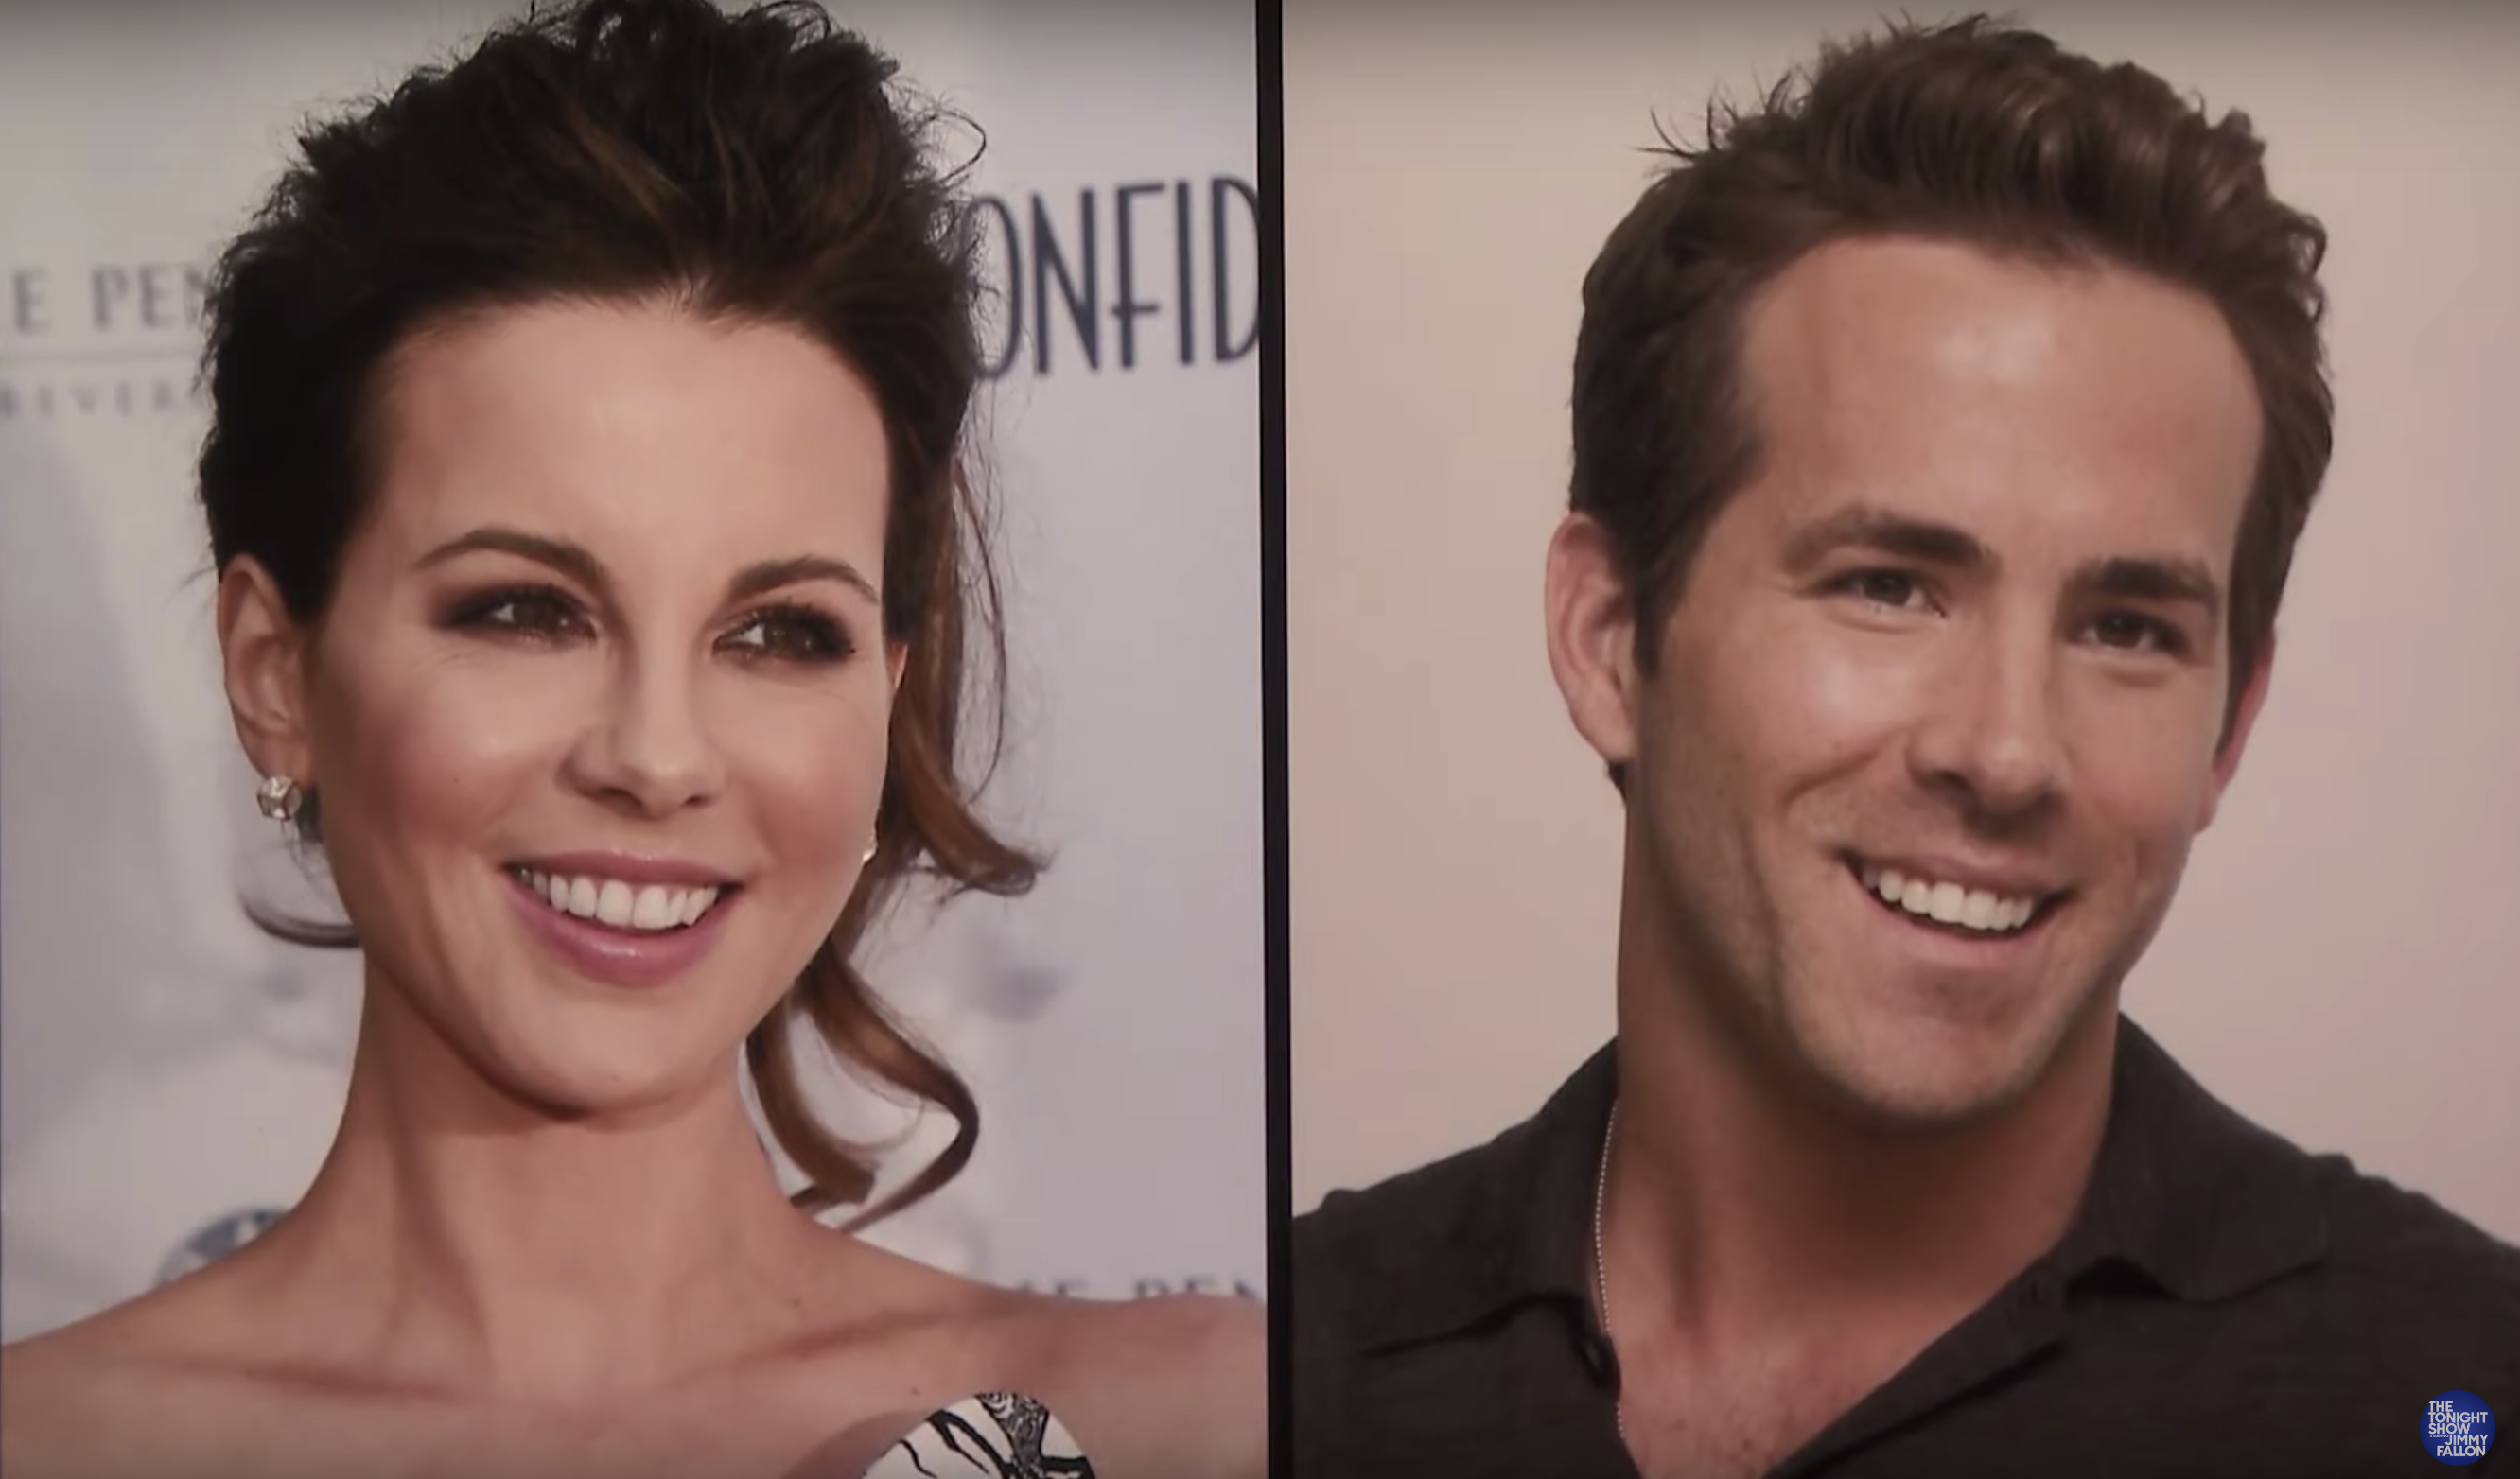 Kate Beckinsale is convinced Ryan Reynolds is her doppelgänger, and we can't un-see it